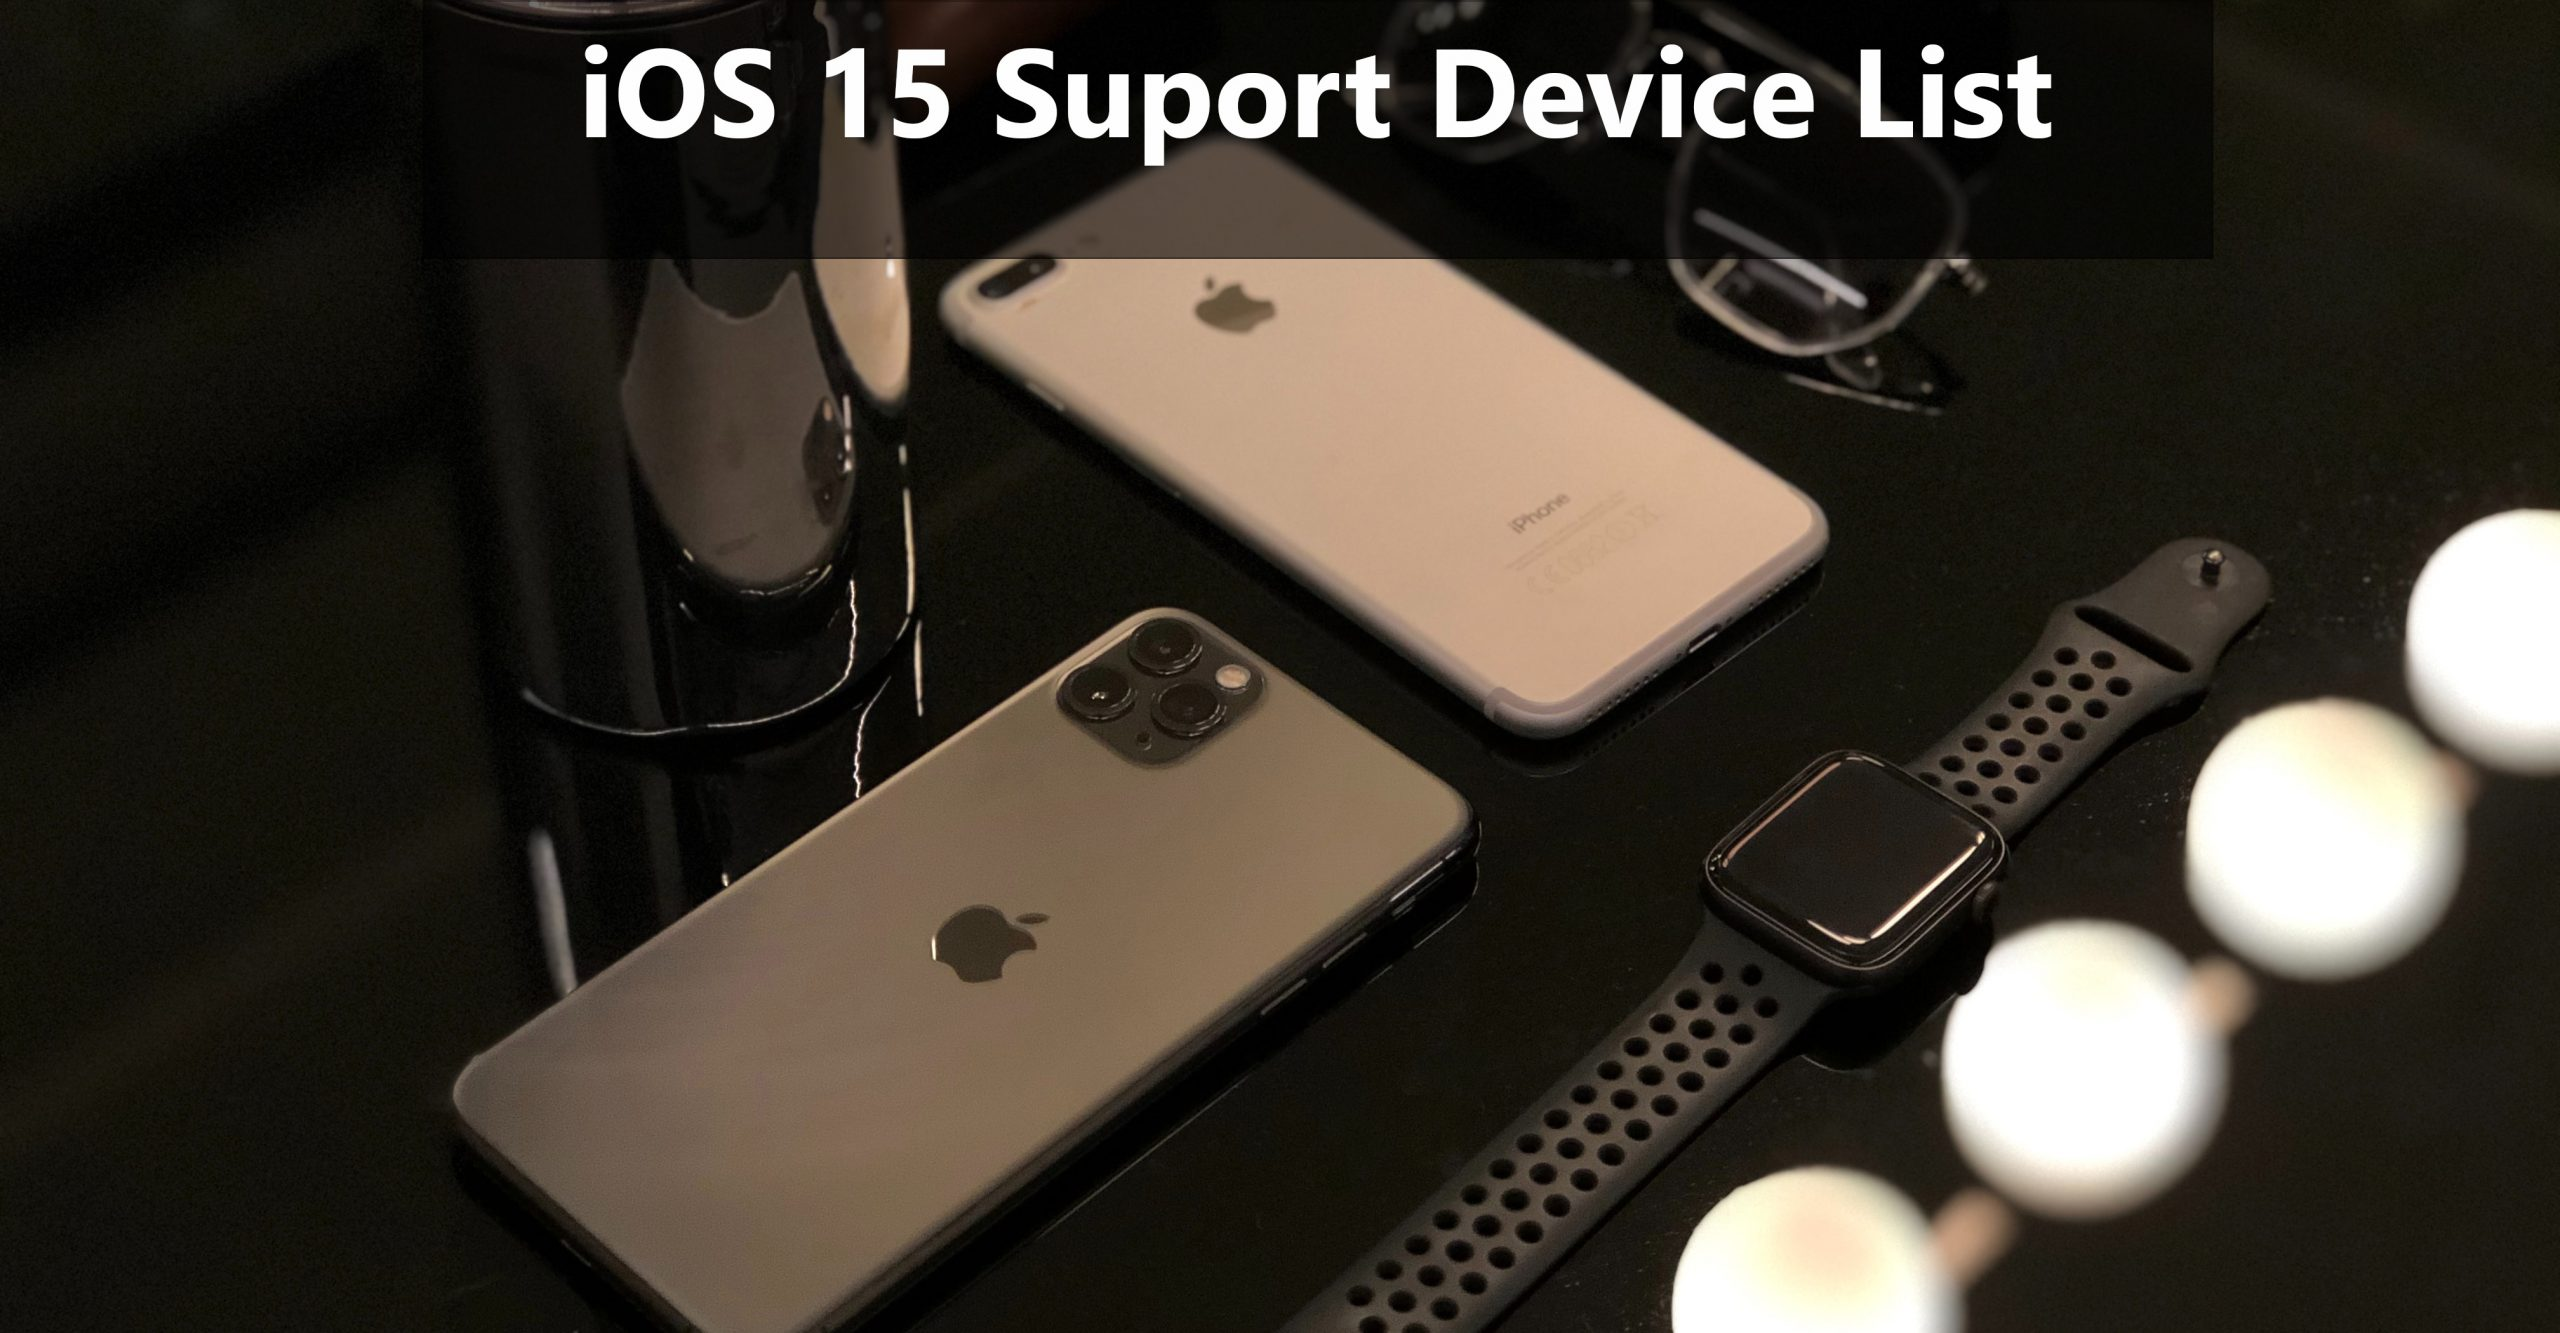 iOS 15 Support device List